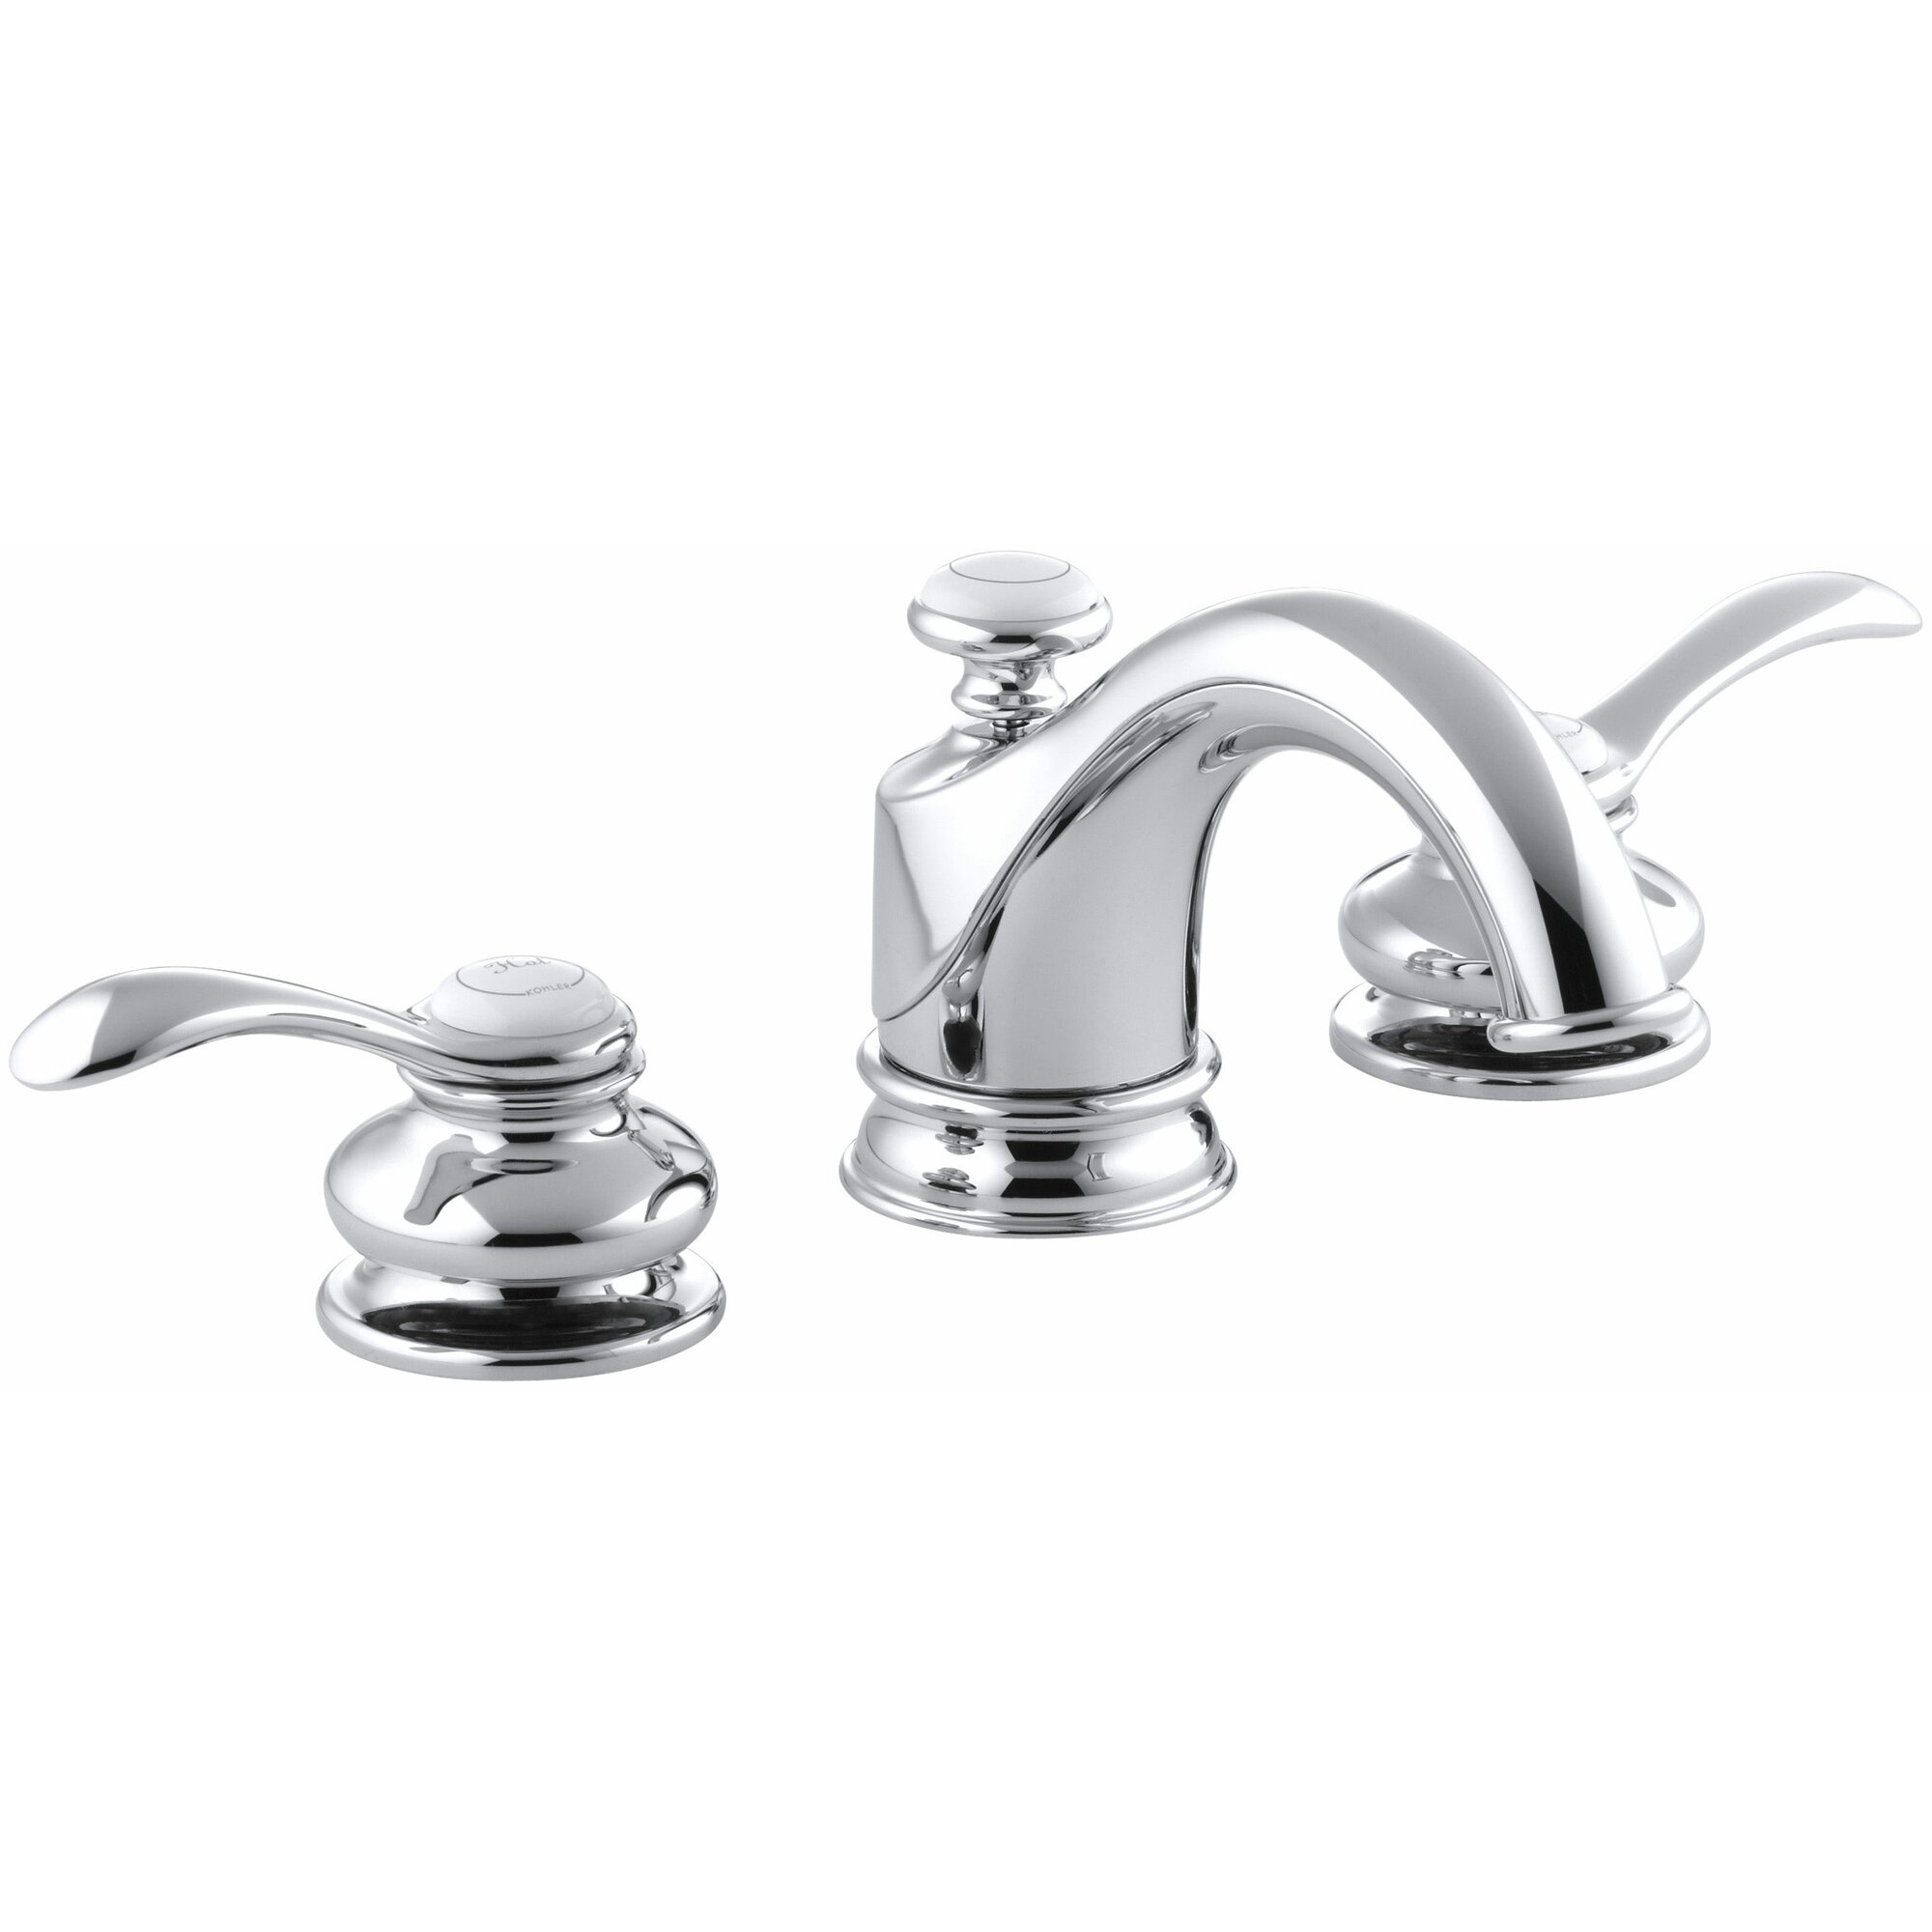 Exira Widespread Bathroom Fauceta Straightforward Design The Faucet Is An Ideal Plement To Any Style